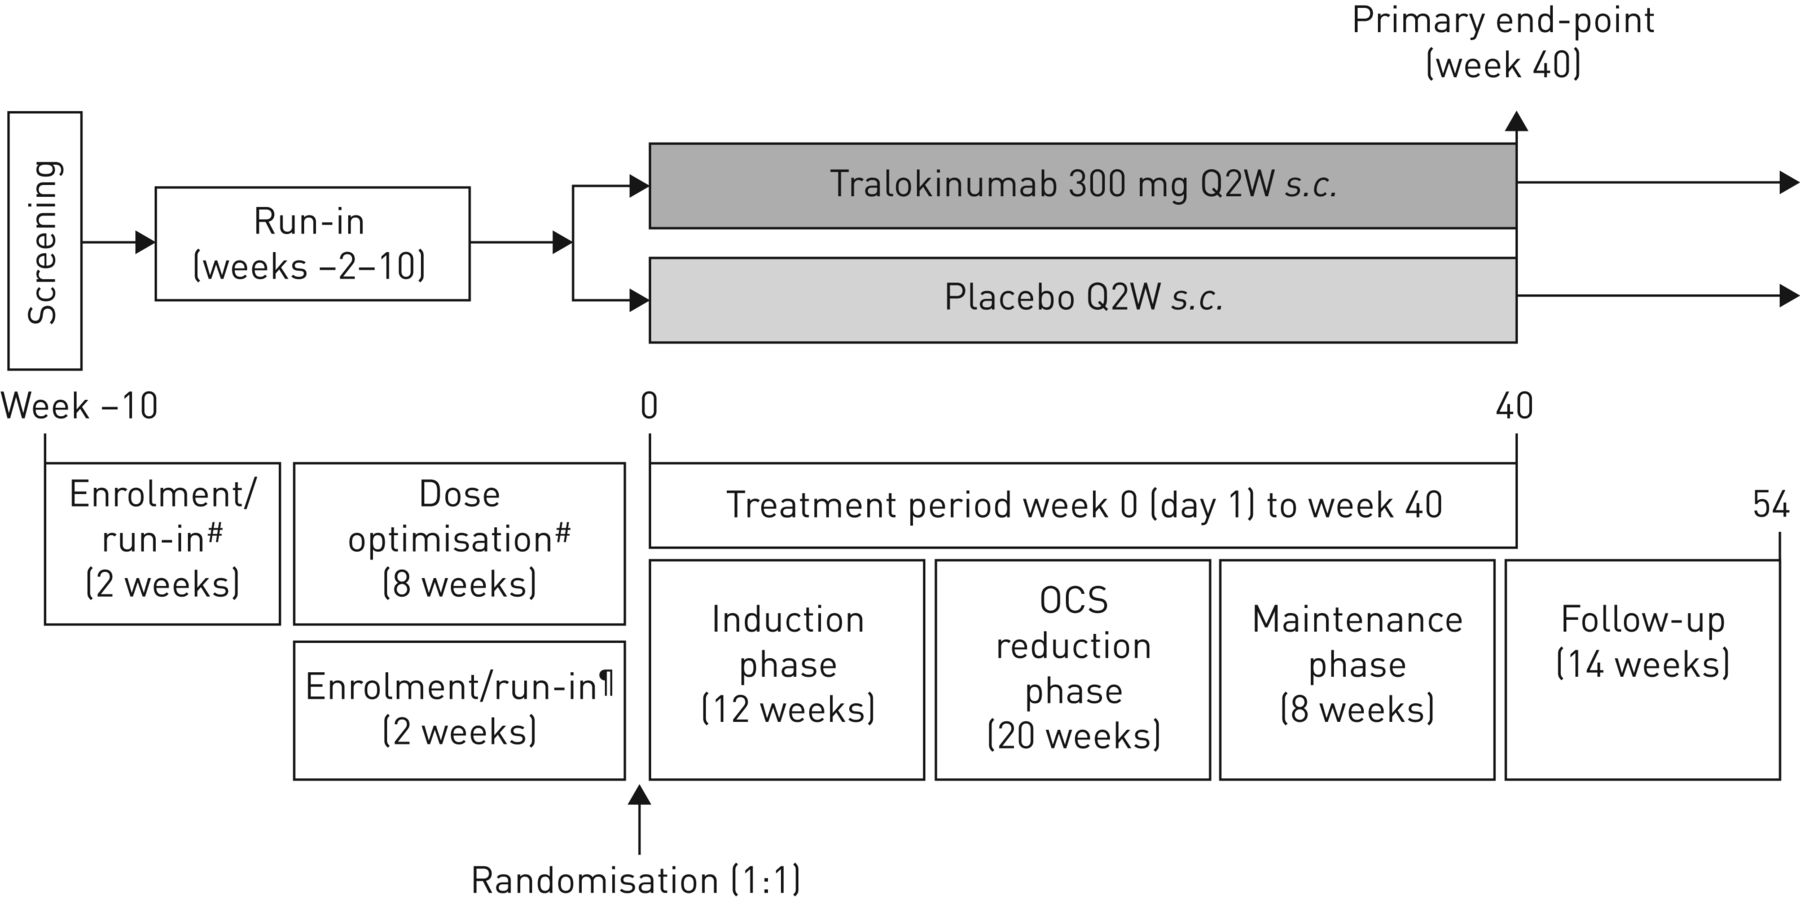 Tralokinumab did not demonstrate oral corticosteroid-sparing